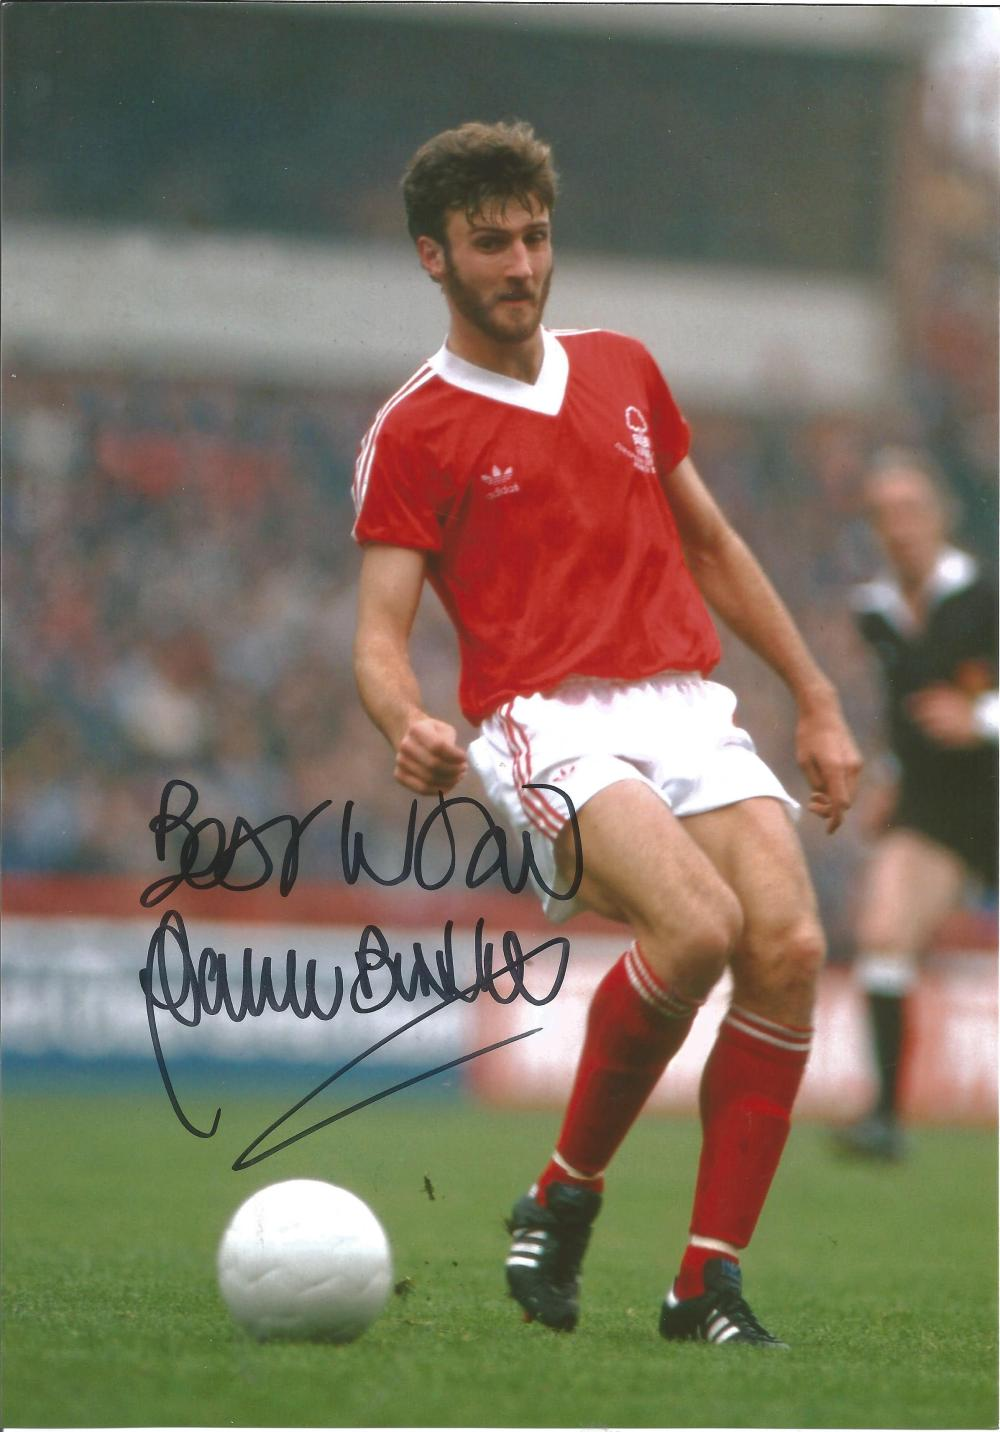 Garry Birtles Signed Nottingham Forest 8x12 Photo. Good condition. All autographs come with a